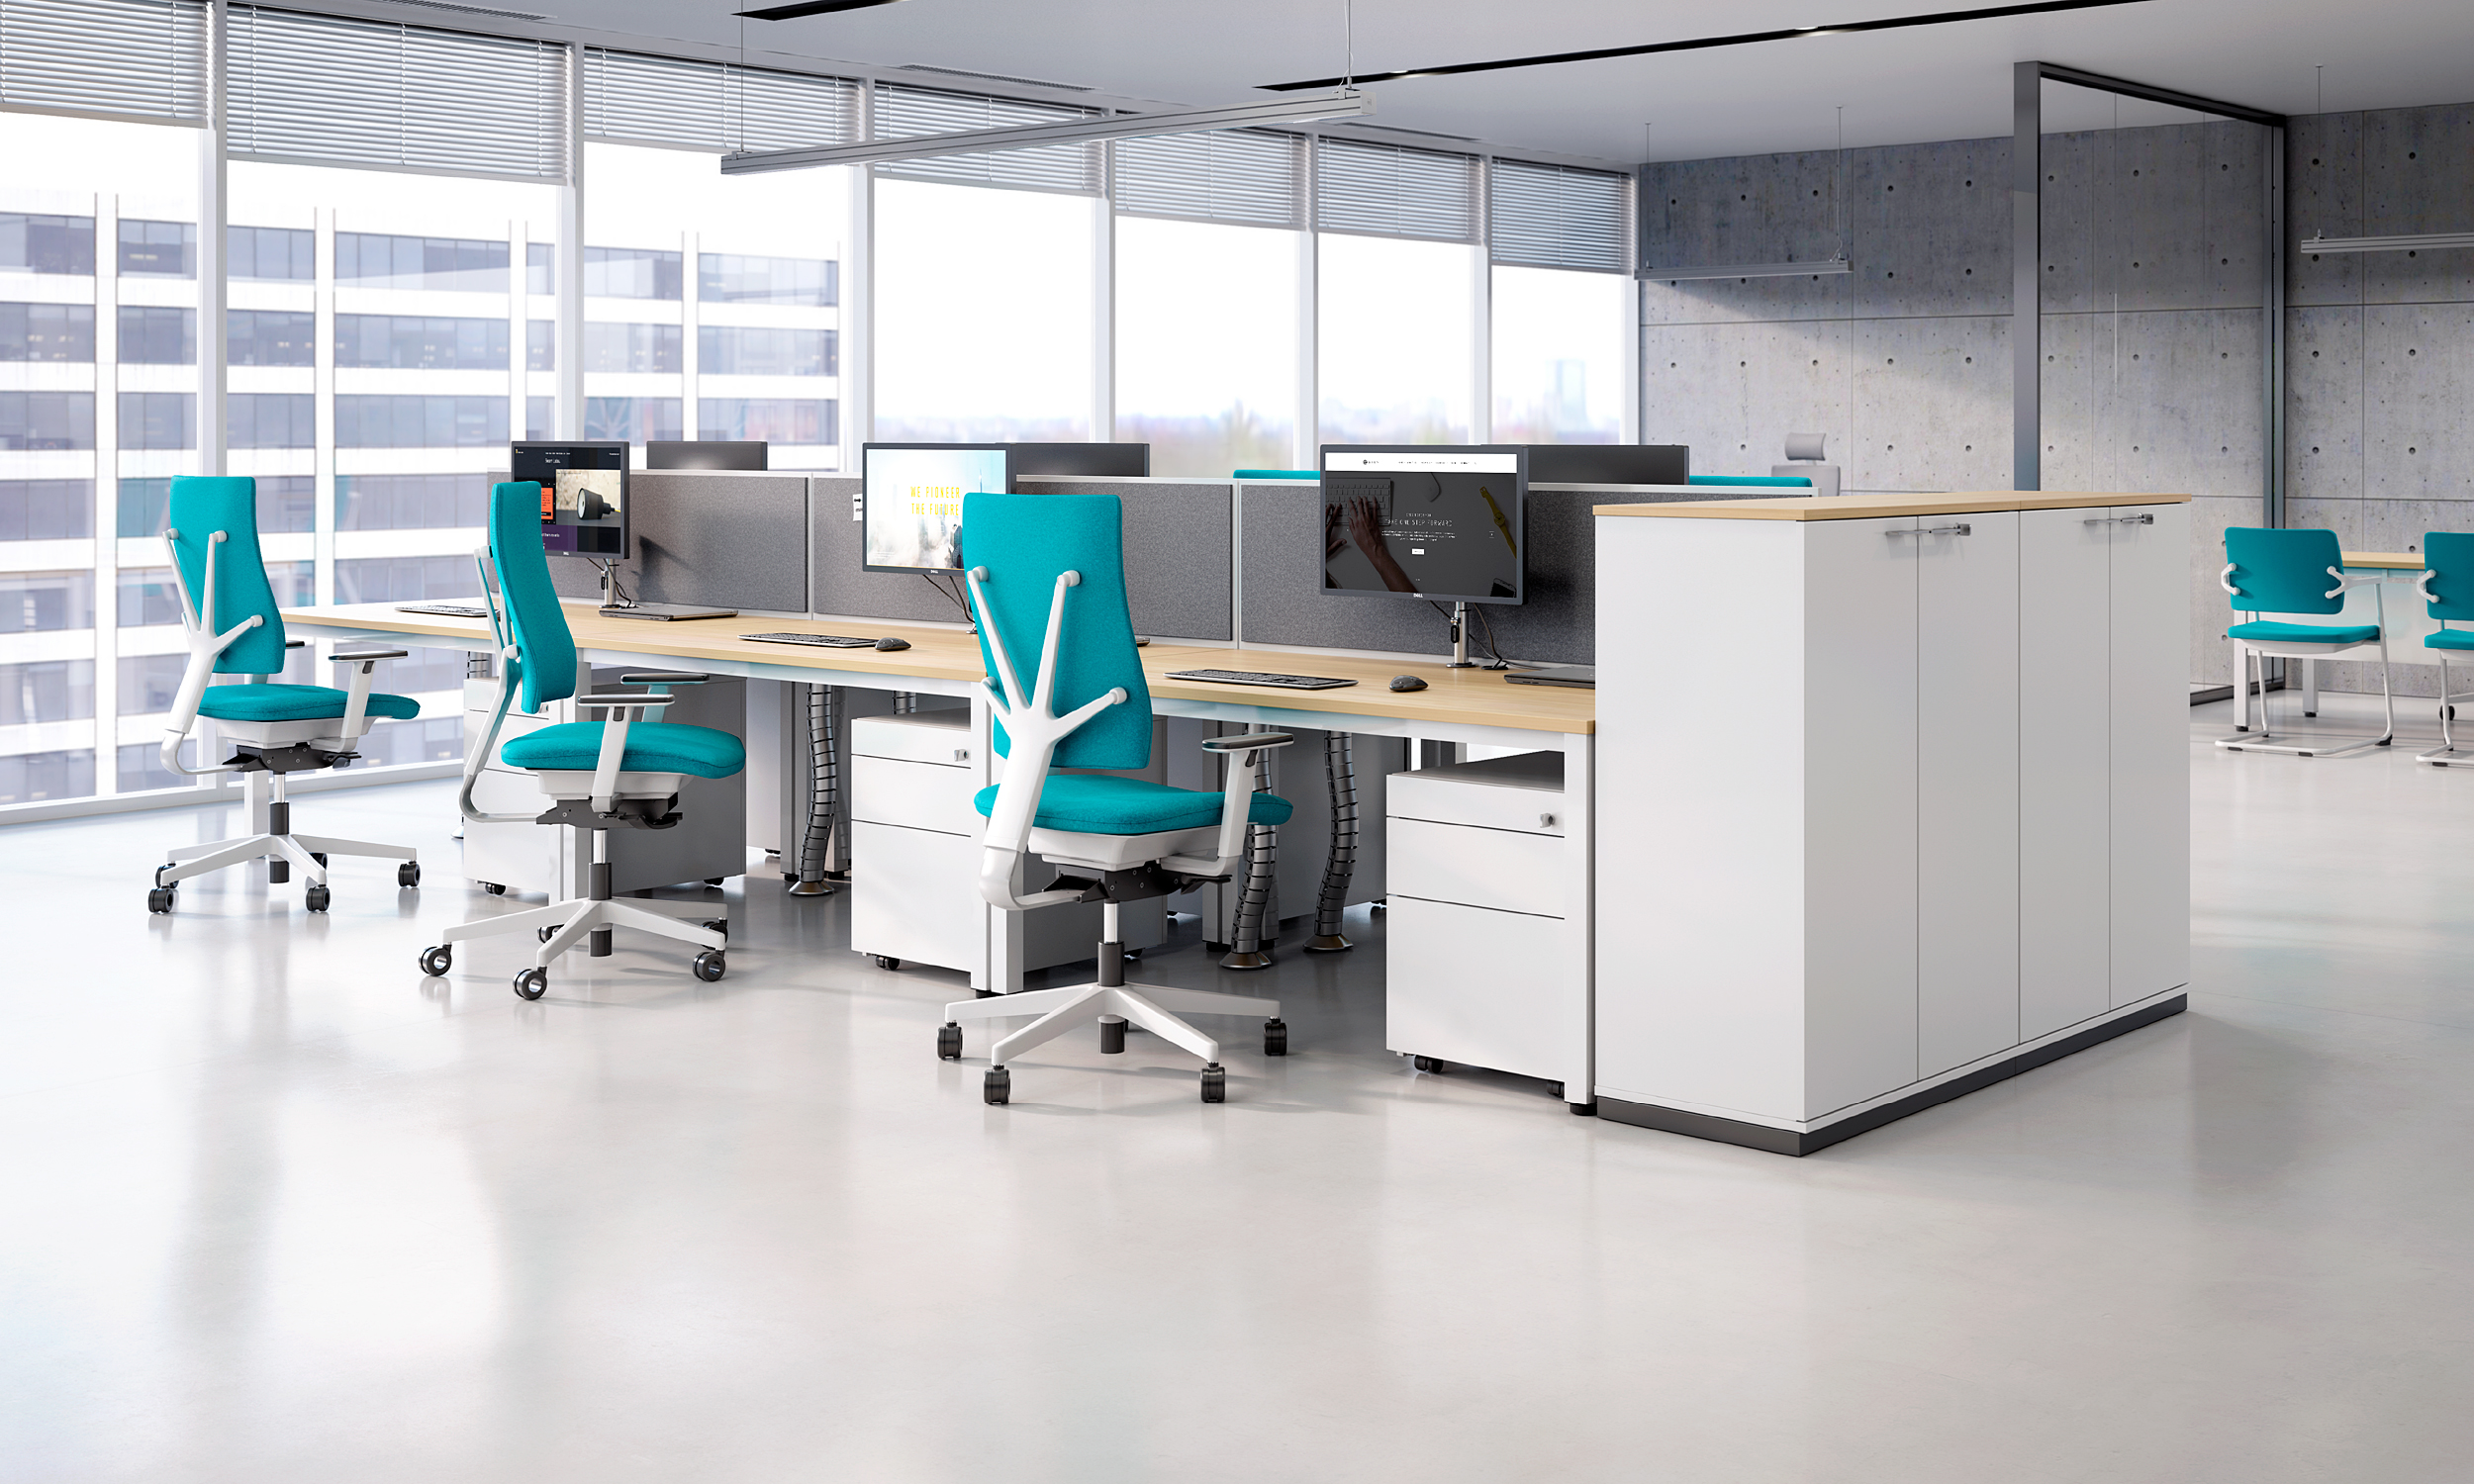 office-furniture_10-6_sqart-23